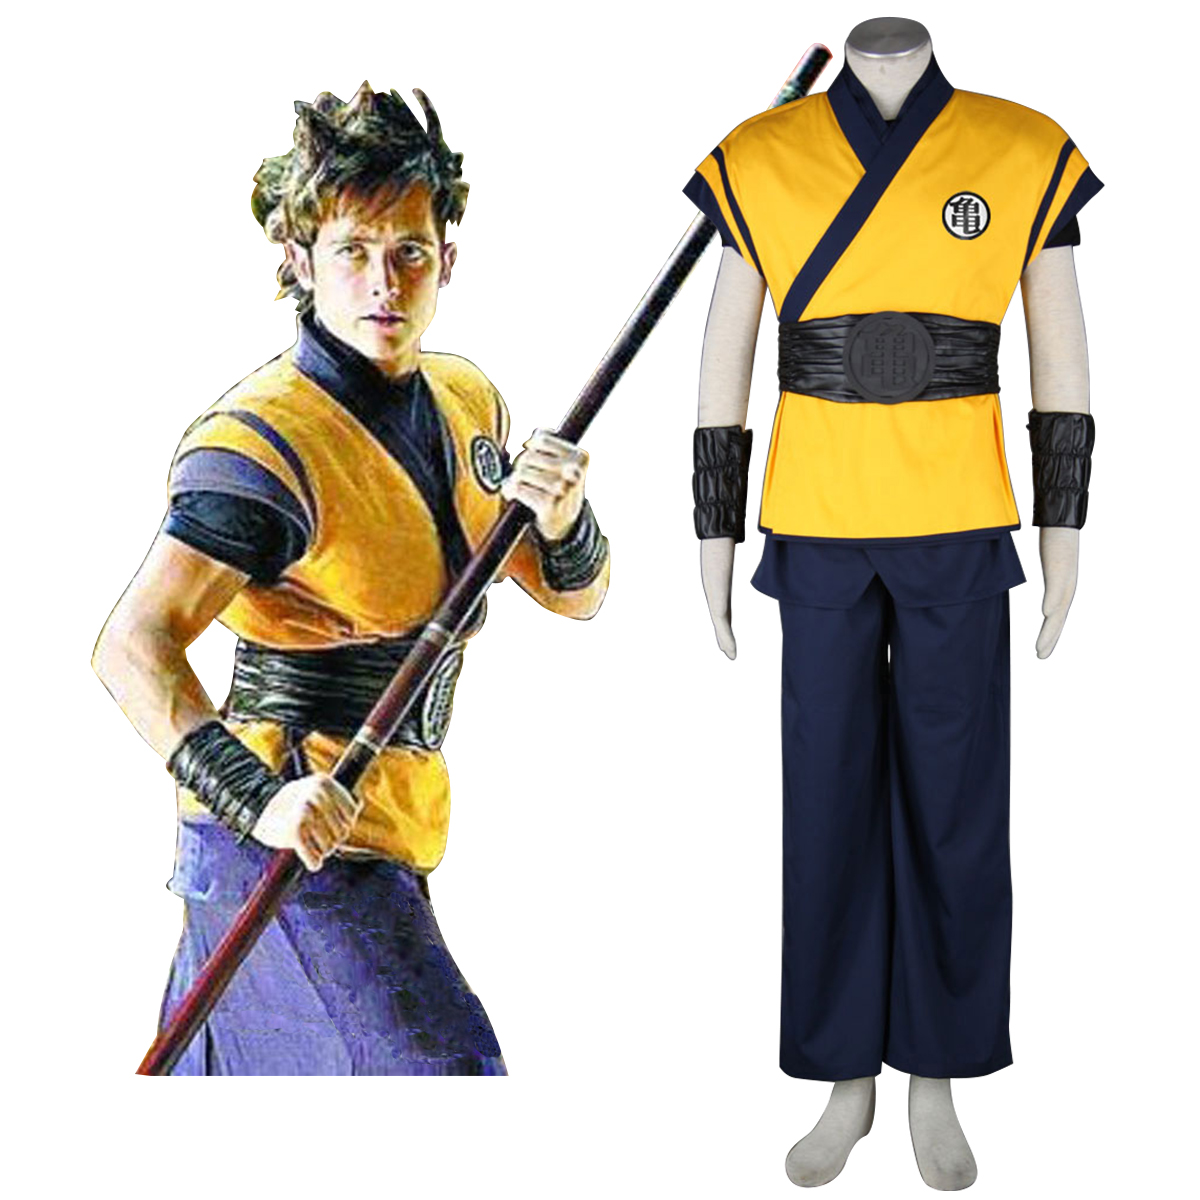 Dragon Ball Son Goku 3 Cosplay Kostym Sverige